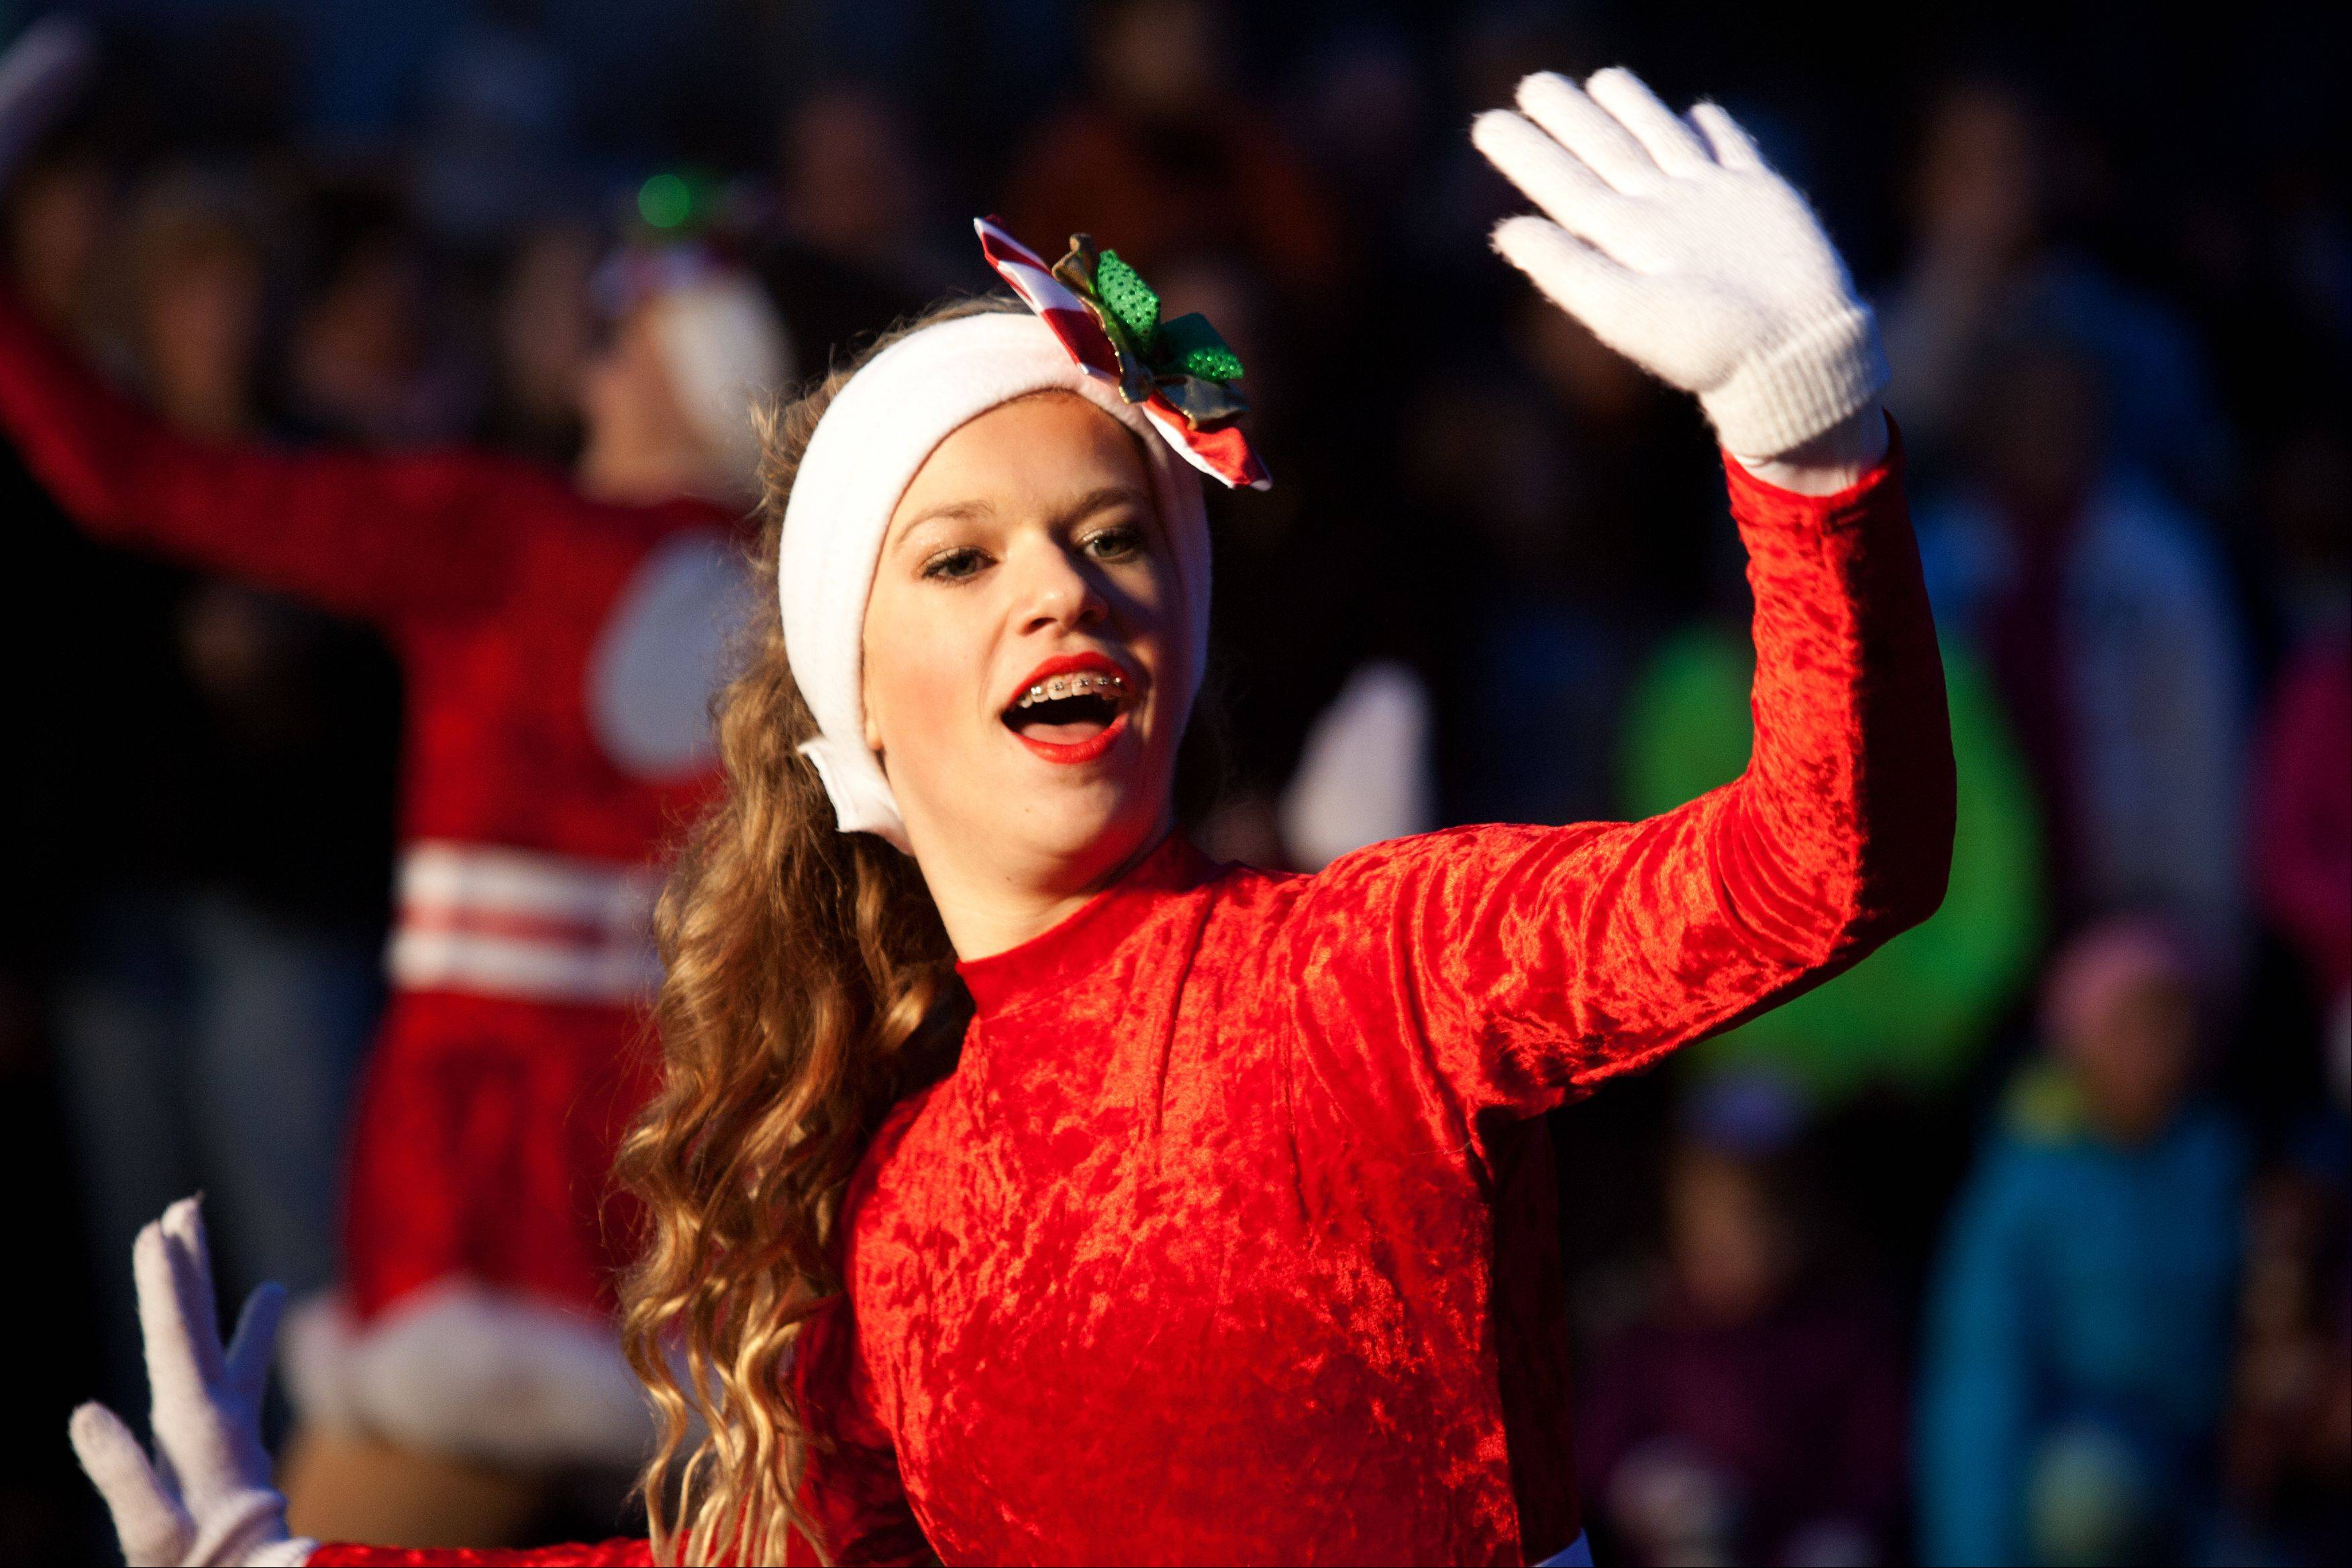 Sadie Bramlett, of the School of the Performing Arts Dance Ensemble, dances during Naperville's Hometown Holiday Celebration on Saturday.